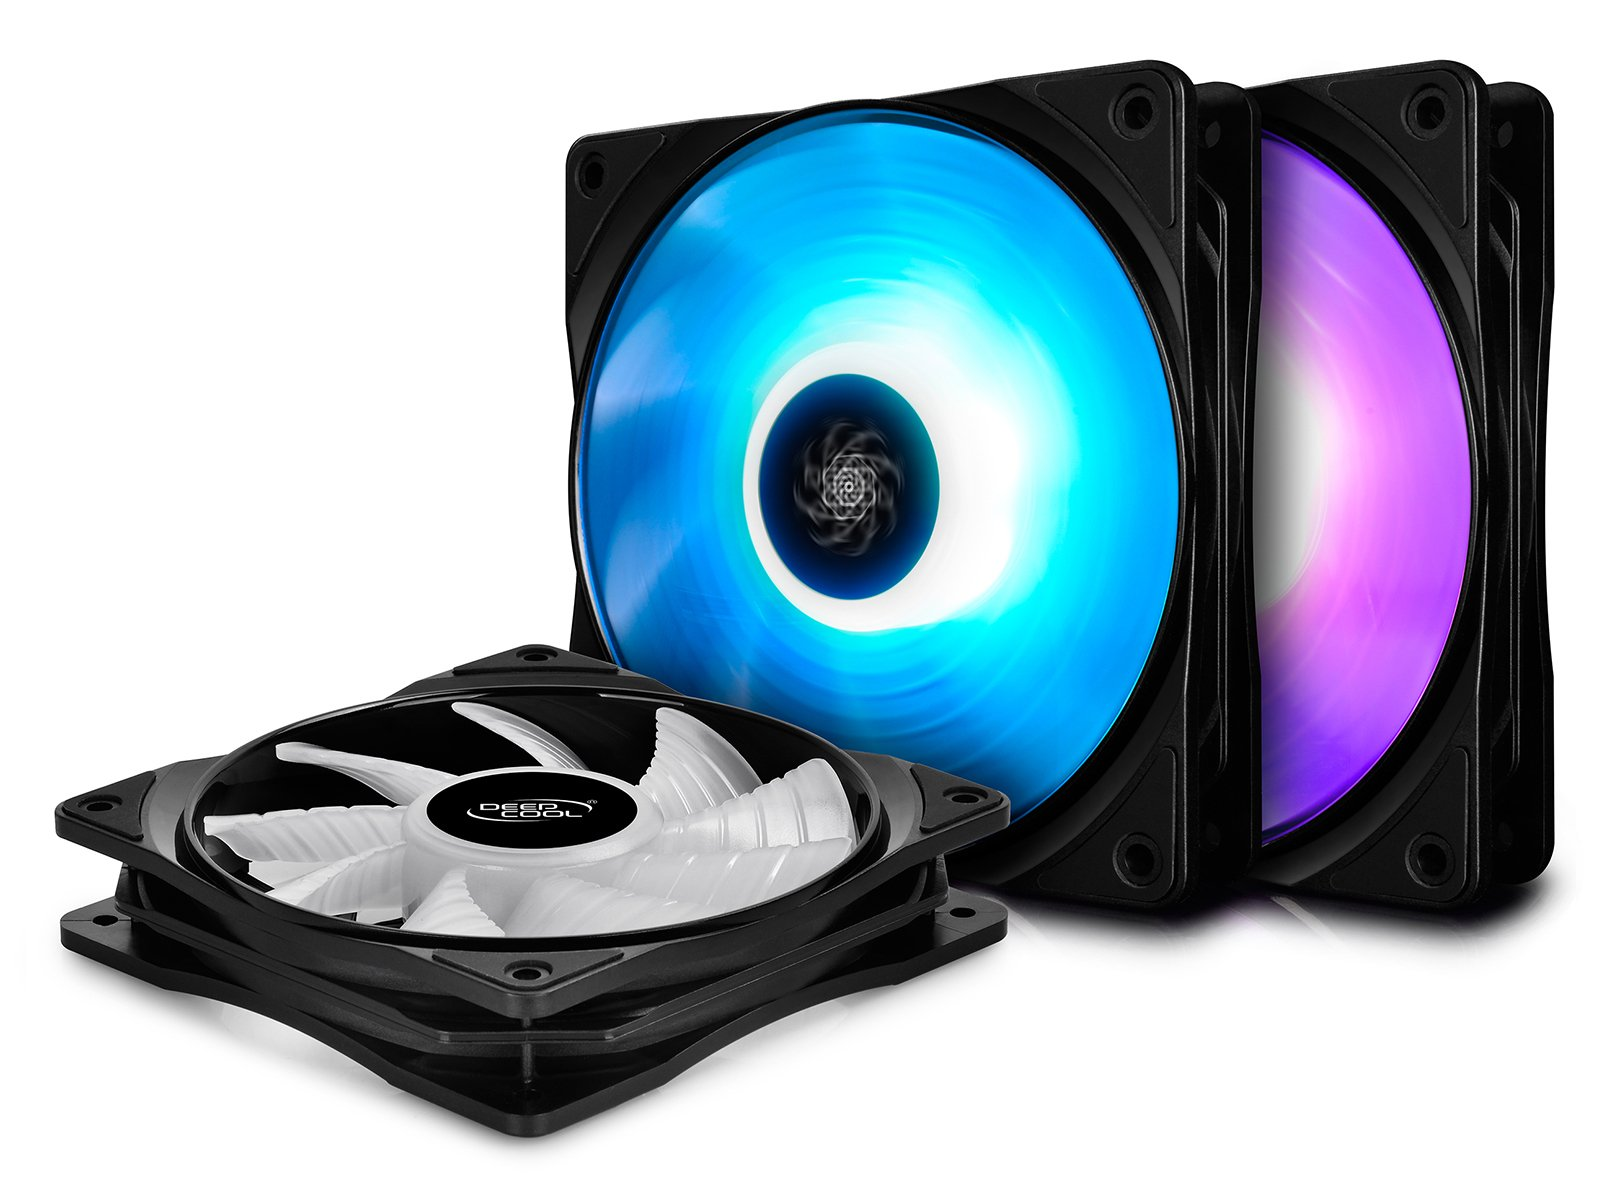 DEEPCOOL RF120 3in1 3X120mm RGB LED PWM Fans with Fan Hub and Extension, Compatible with ASUS Aura Sync